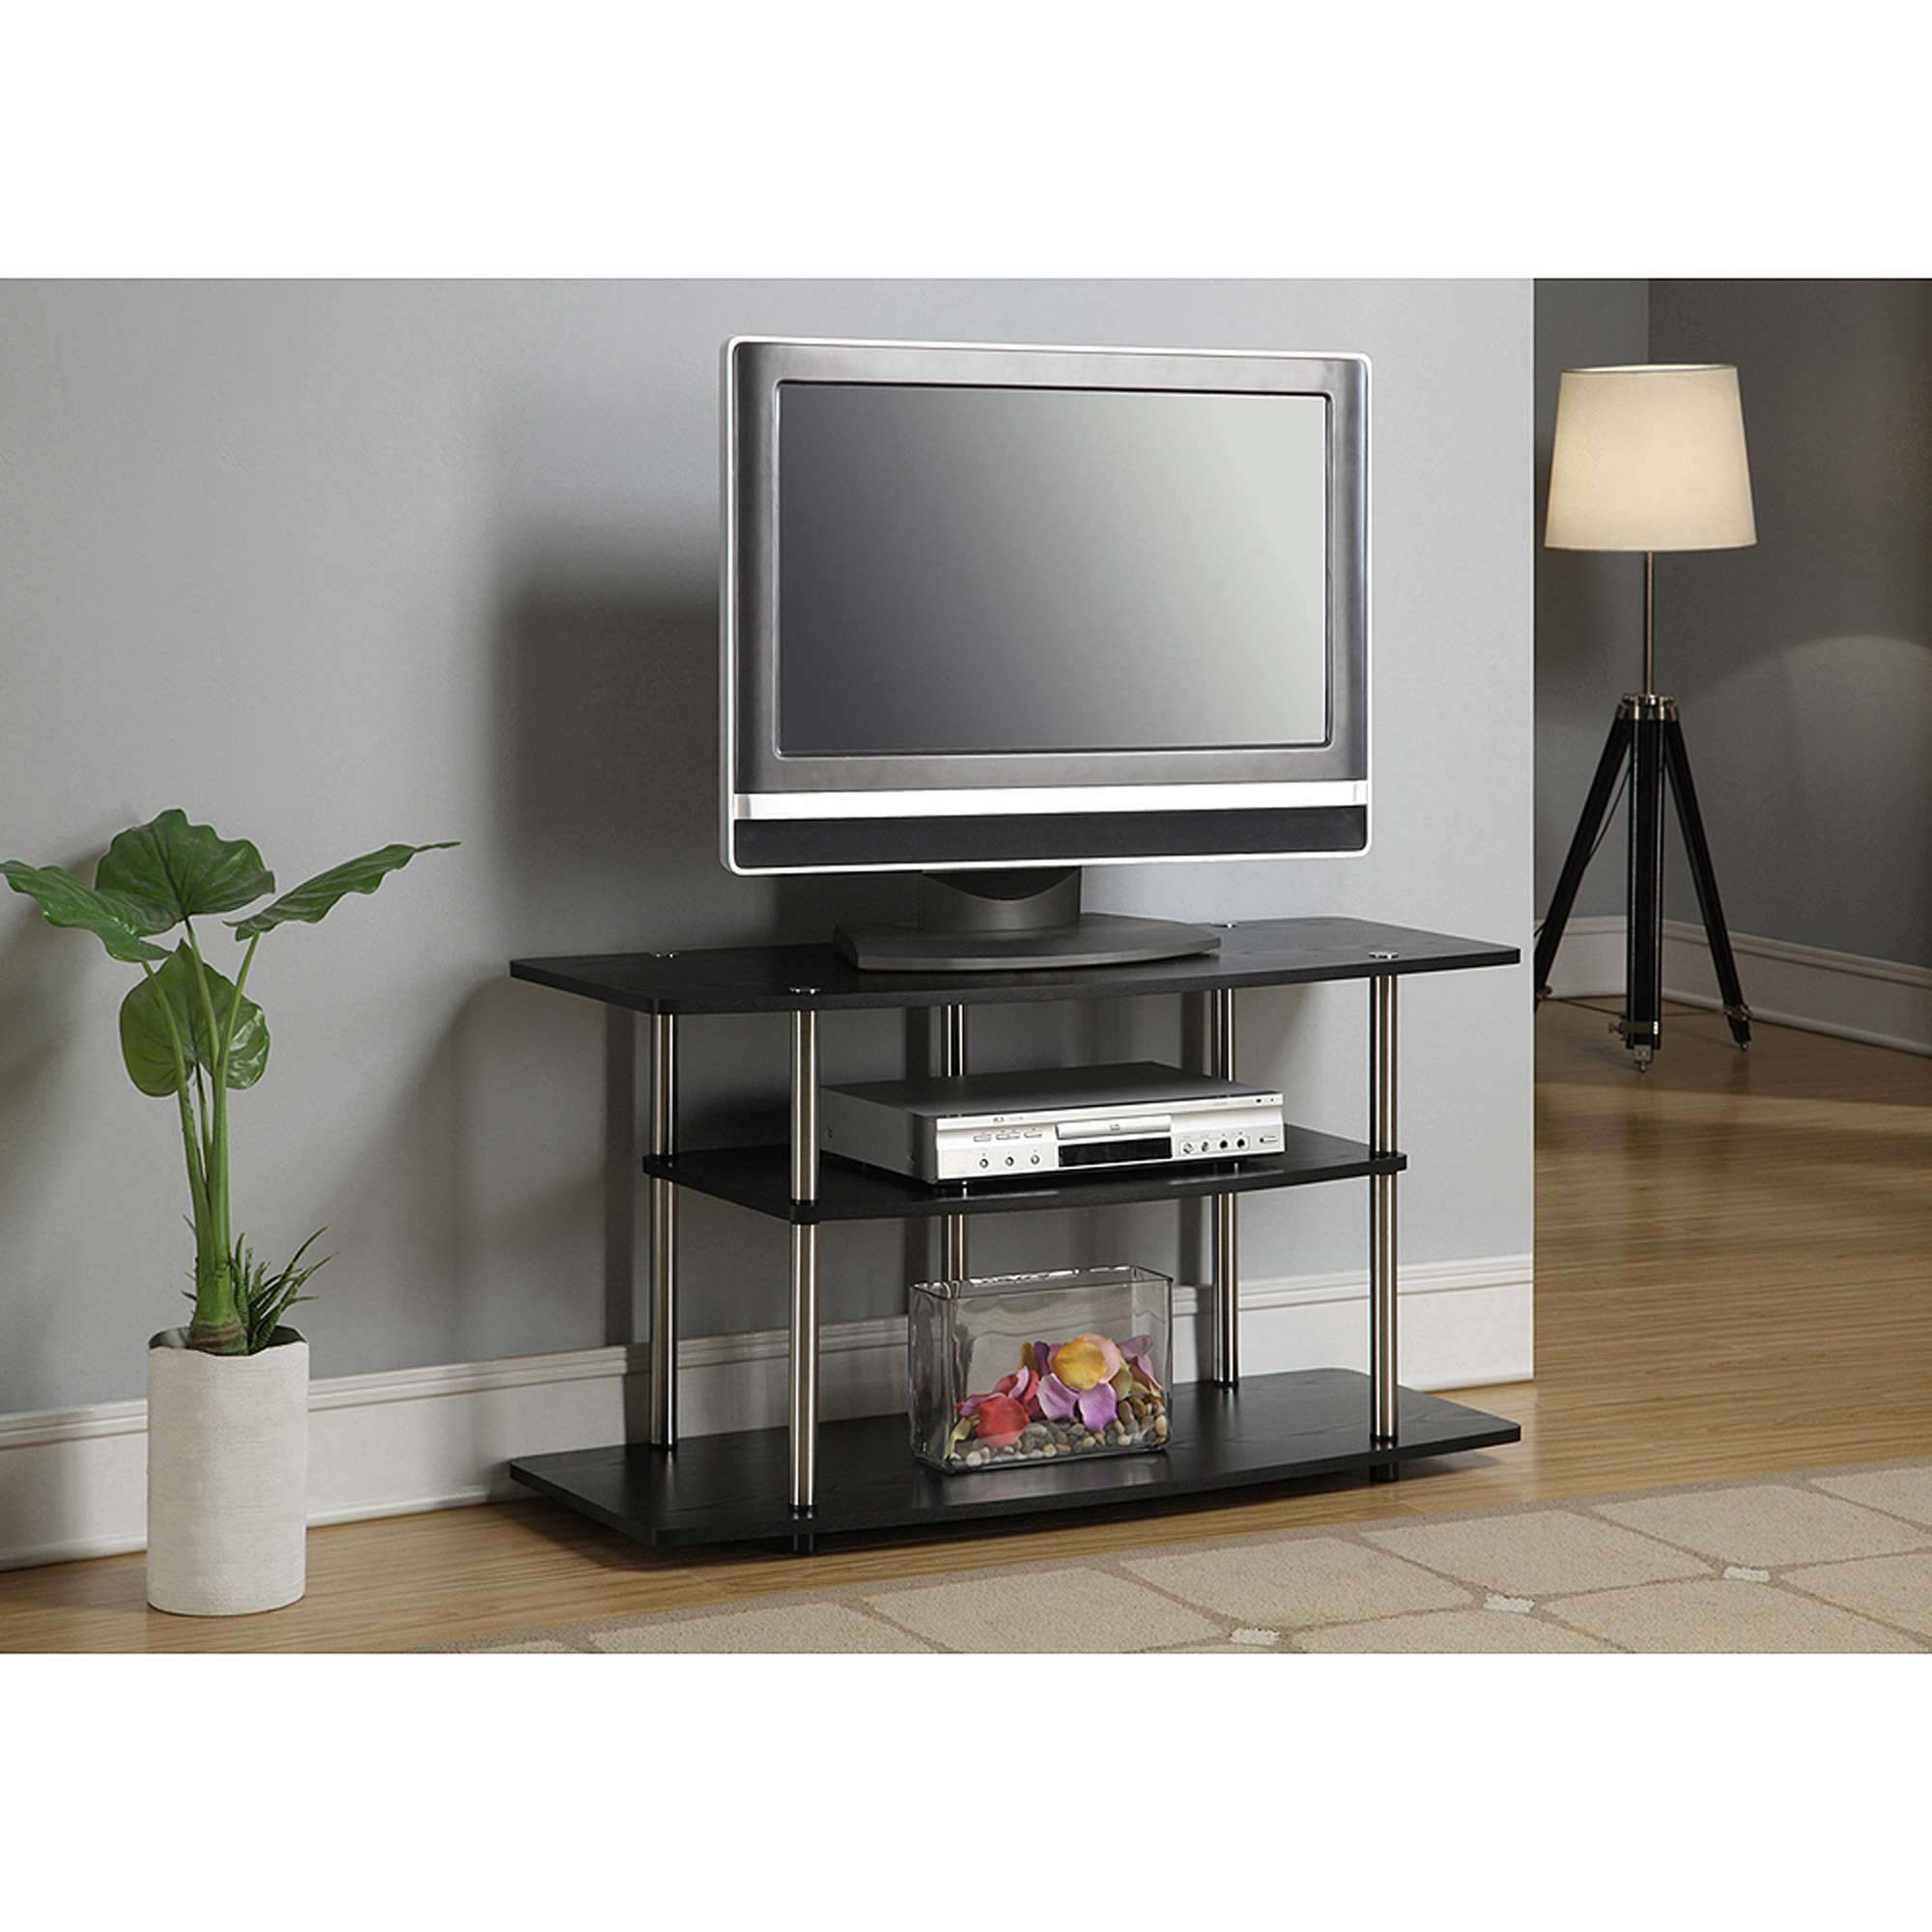 Z Line Designs Soliss 3 In 1 Tv Stand With Mount, For Tvs Up To 60 Within 32 Inch Tv Stands (View 15 of 15)